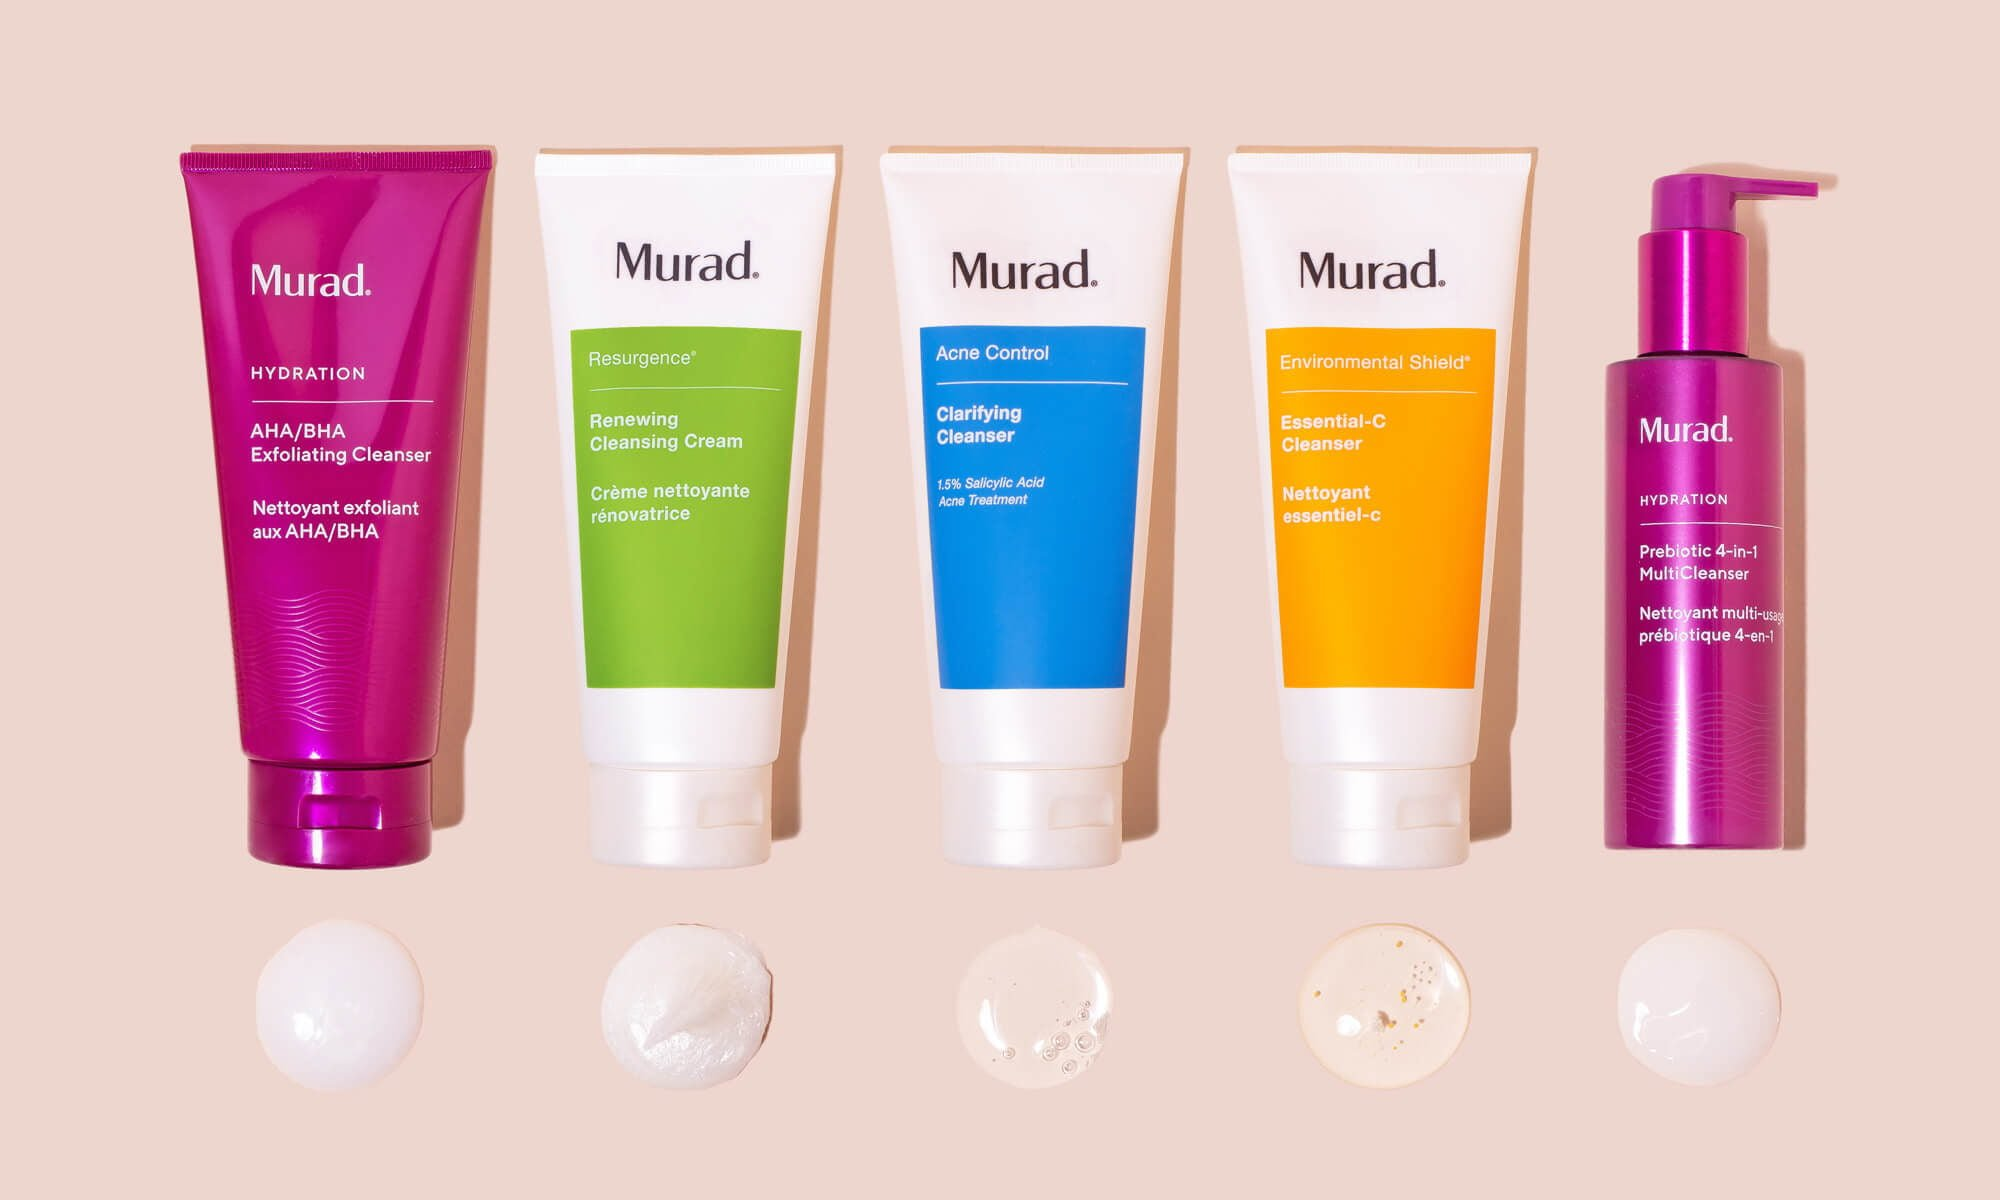 Murad Serums & Treatments